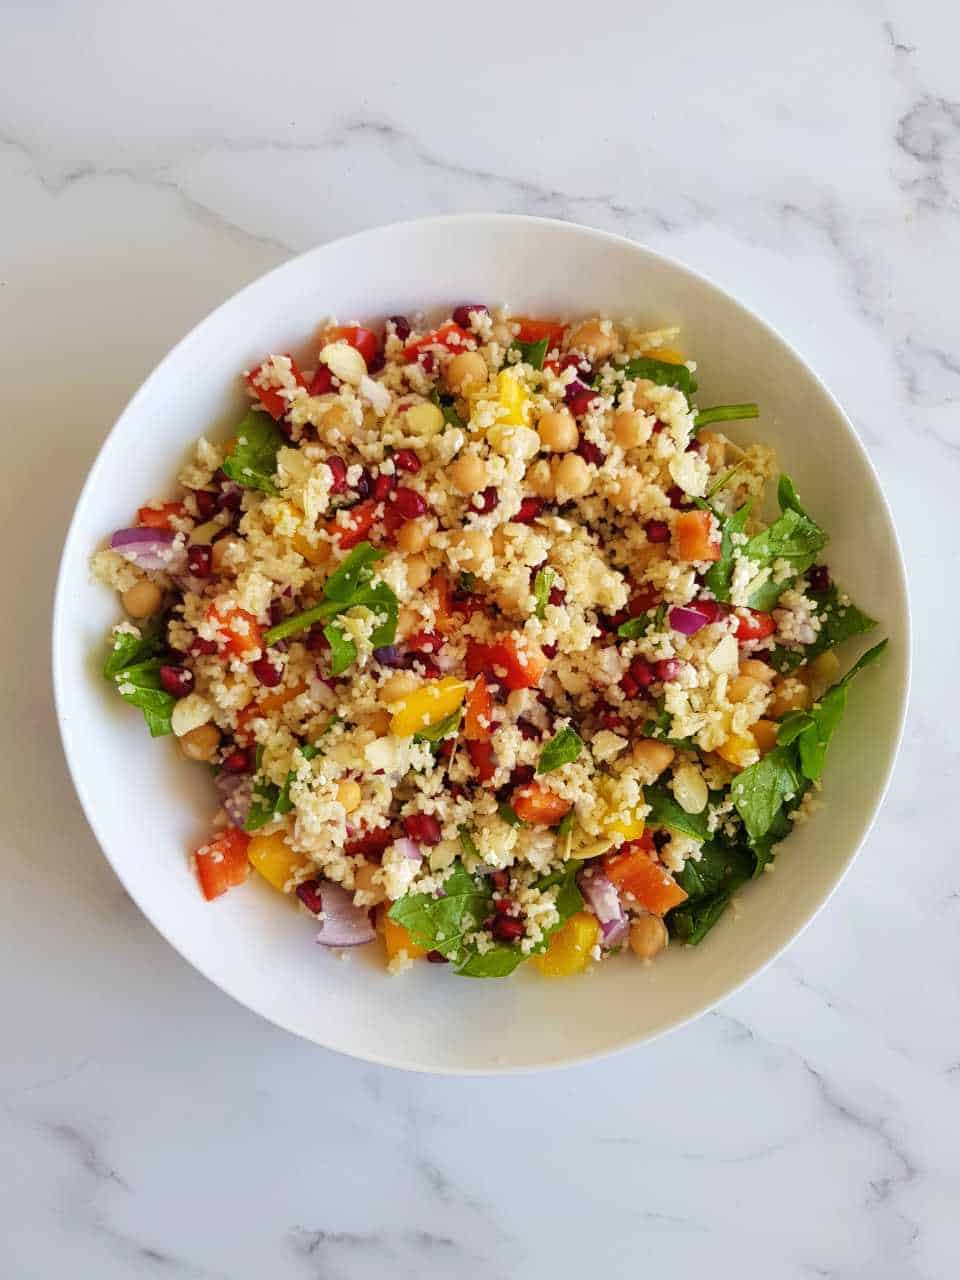 Couscous salad with pomegranate in a white bowl on a marble table